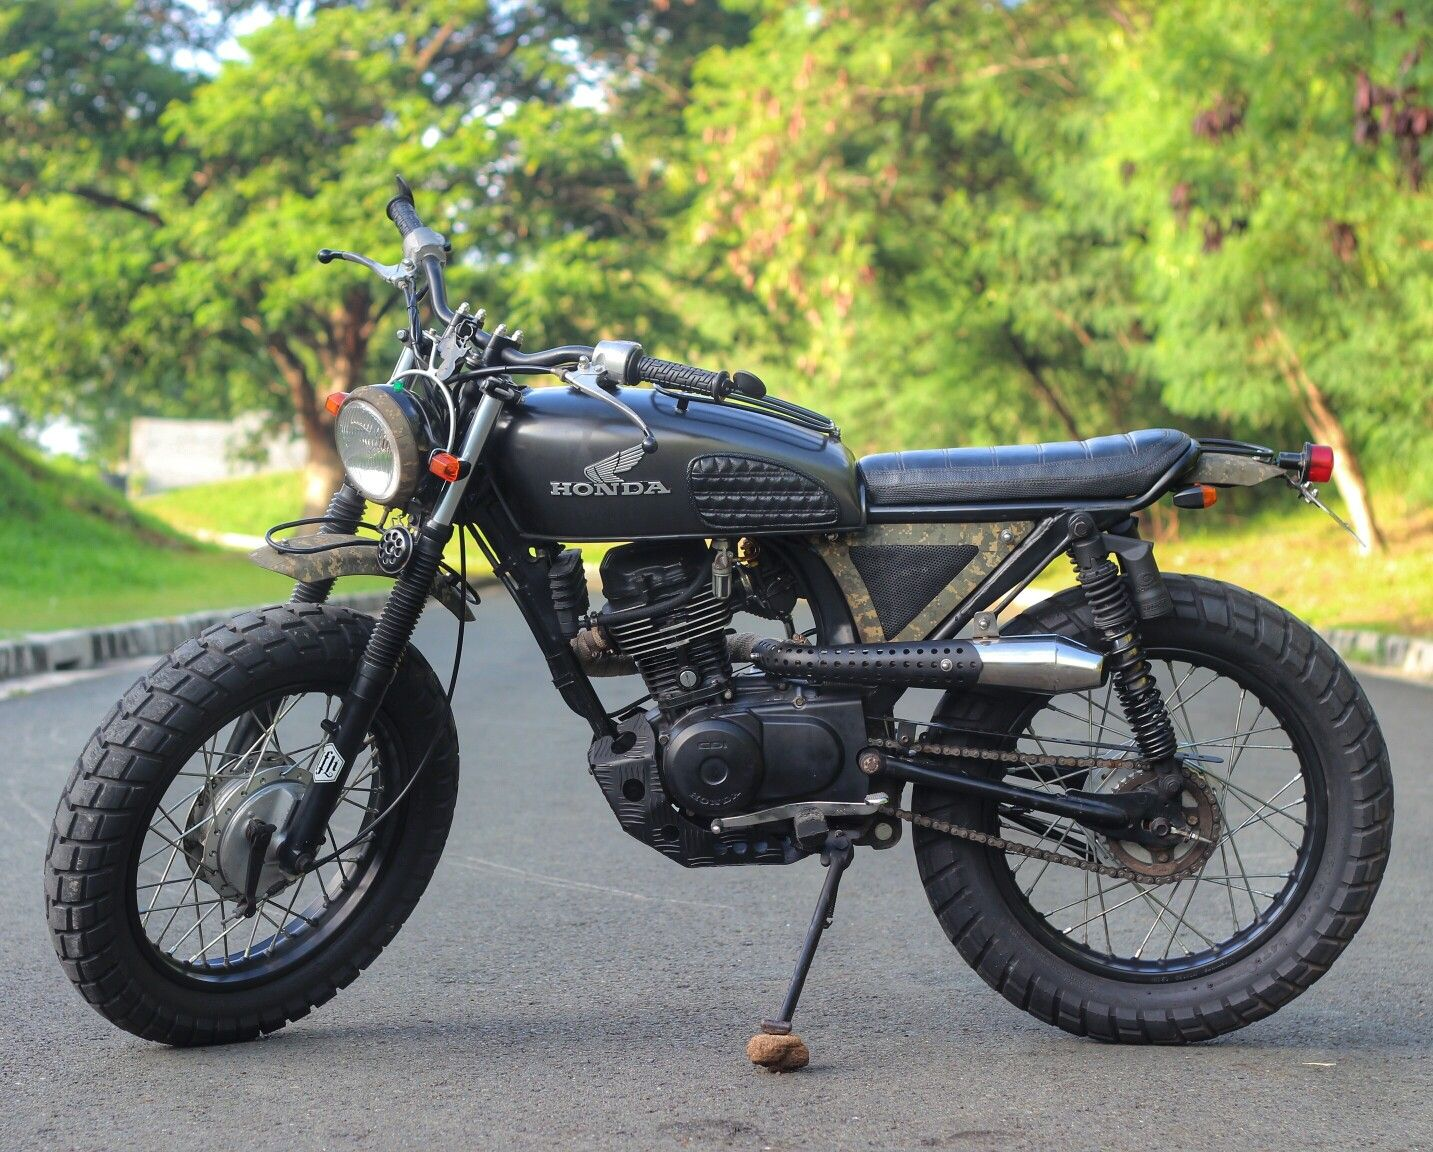 Cutom Honda Tmx 155 Jfkustoms Retro Motorcycle Cafe Racing Cafe Racer